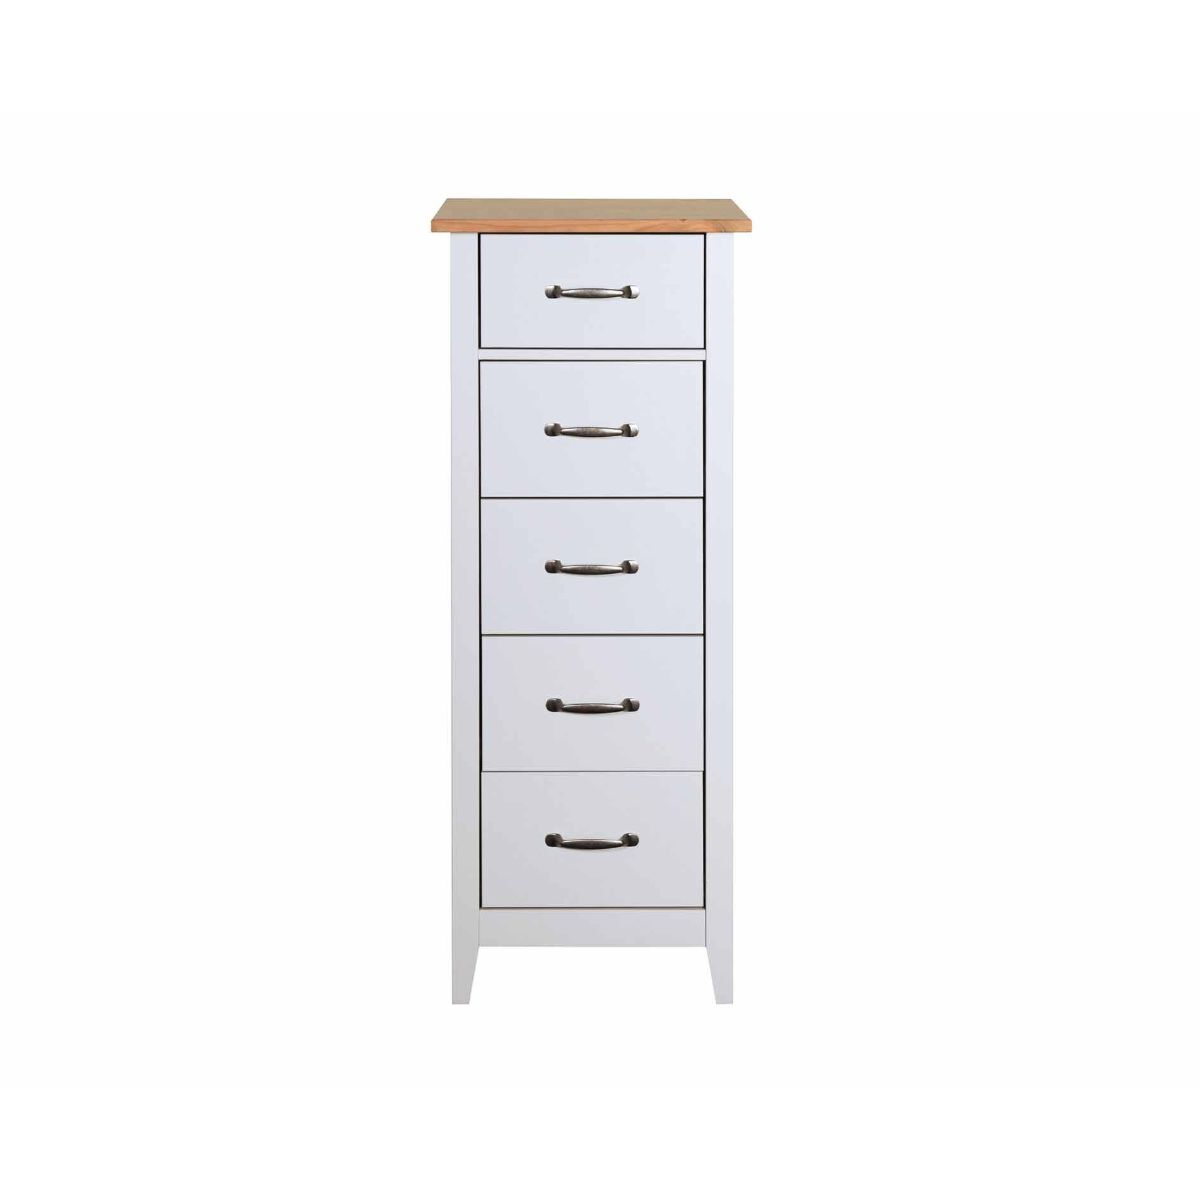 Steens Norfolk 5 Drawer Narrow Chest Grey and Pine